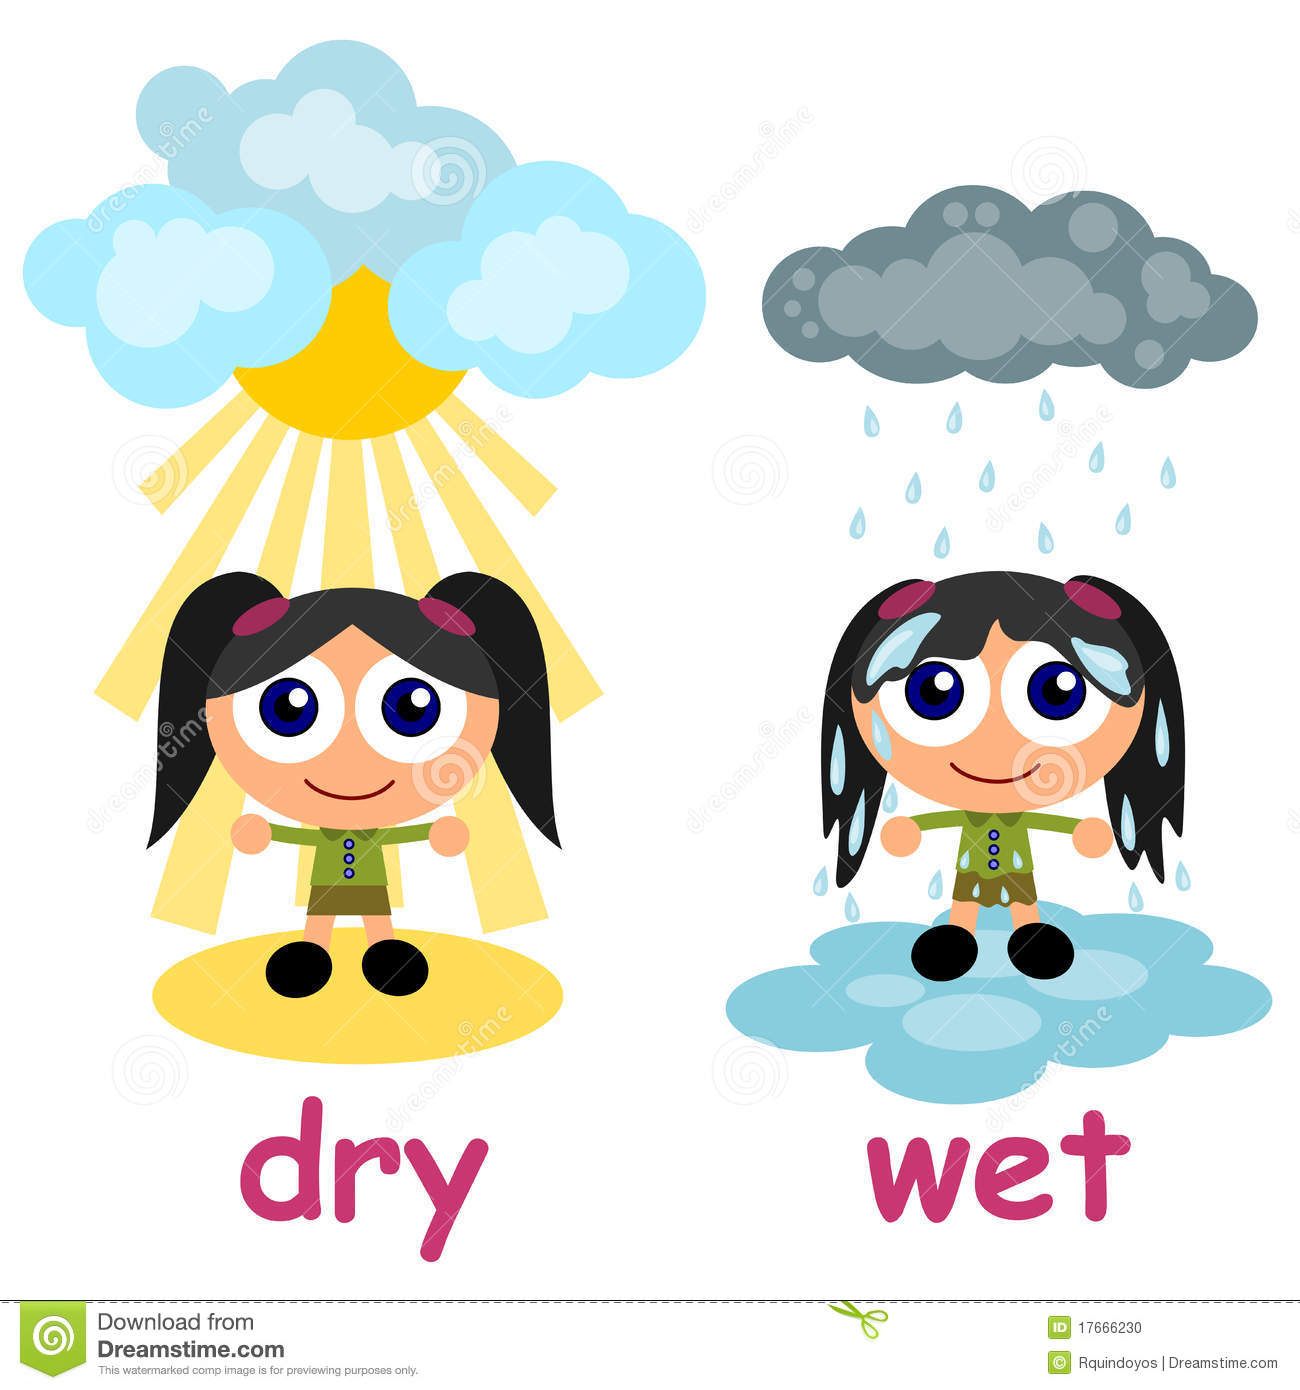 Free cliparts download images. Wet clipart wet dry